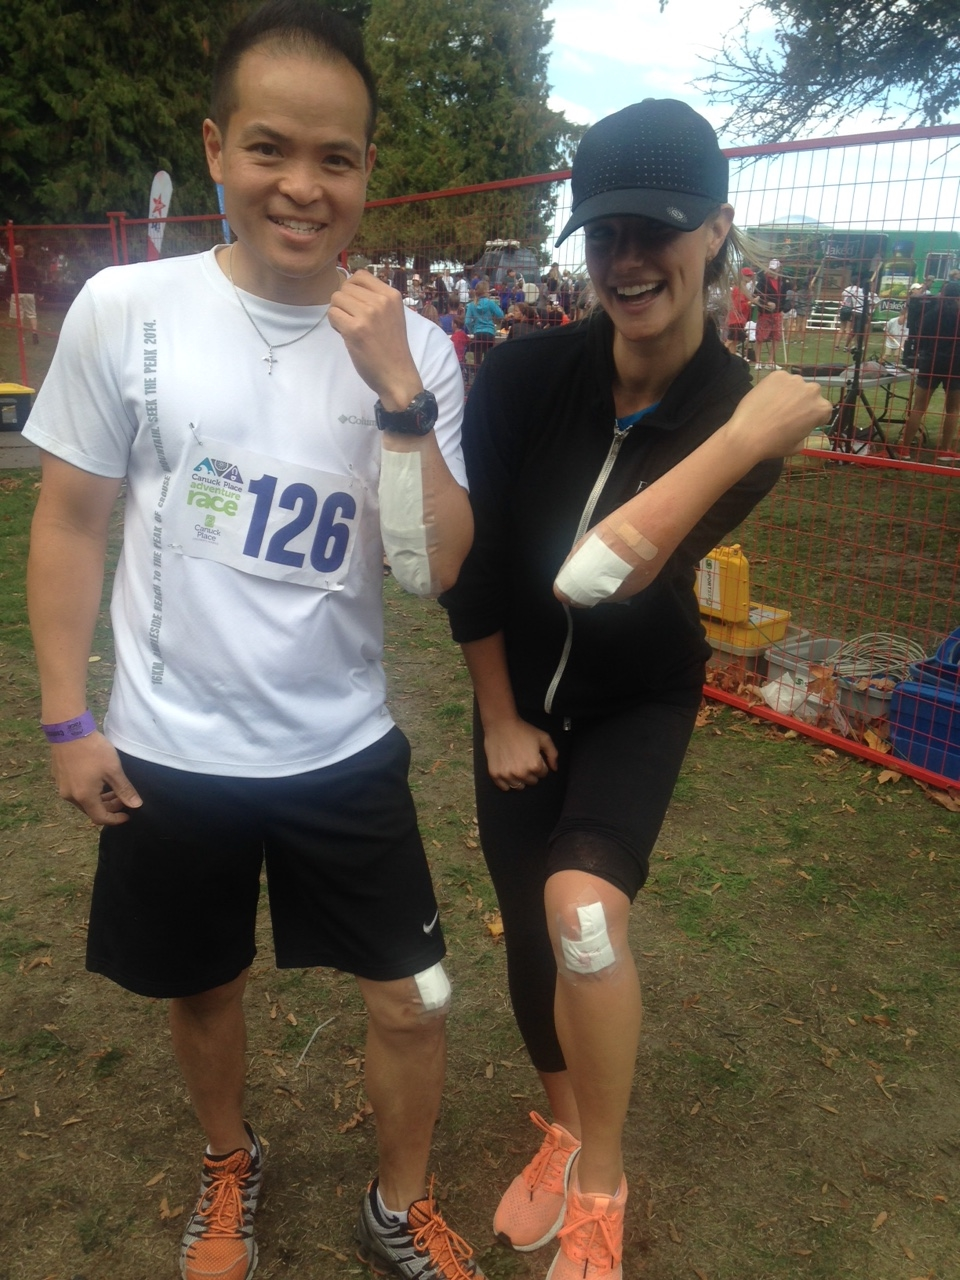 2015-09 NWM Gives Back - 2015 Canuck Place Adventure Race - Rich-V Matching Bandages image